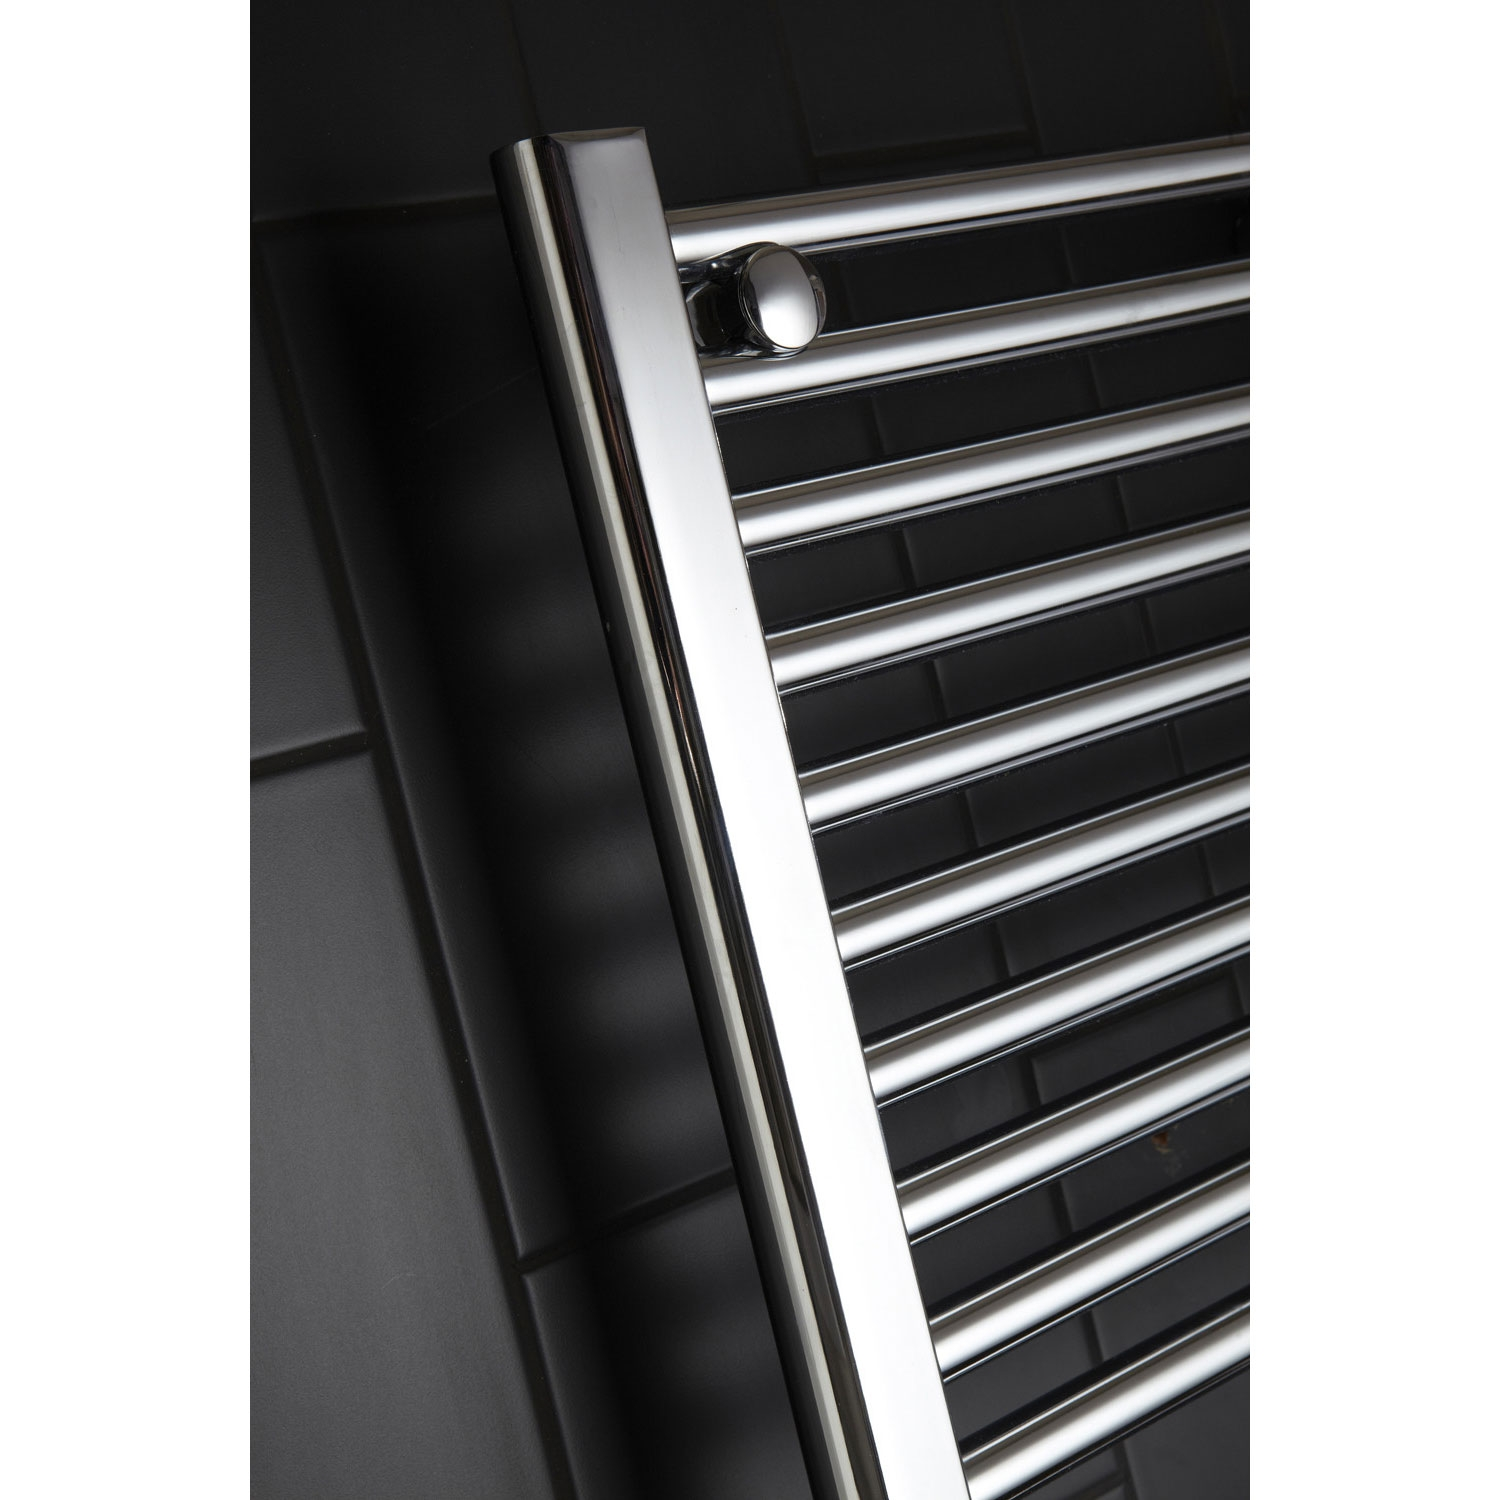 Verona Flat Designer Heated Towel Rail 1100mm H x 450mm W Chrome-1